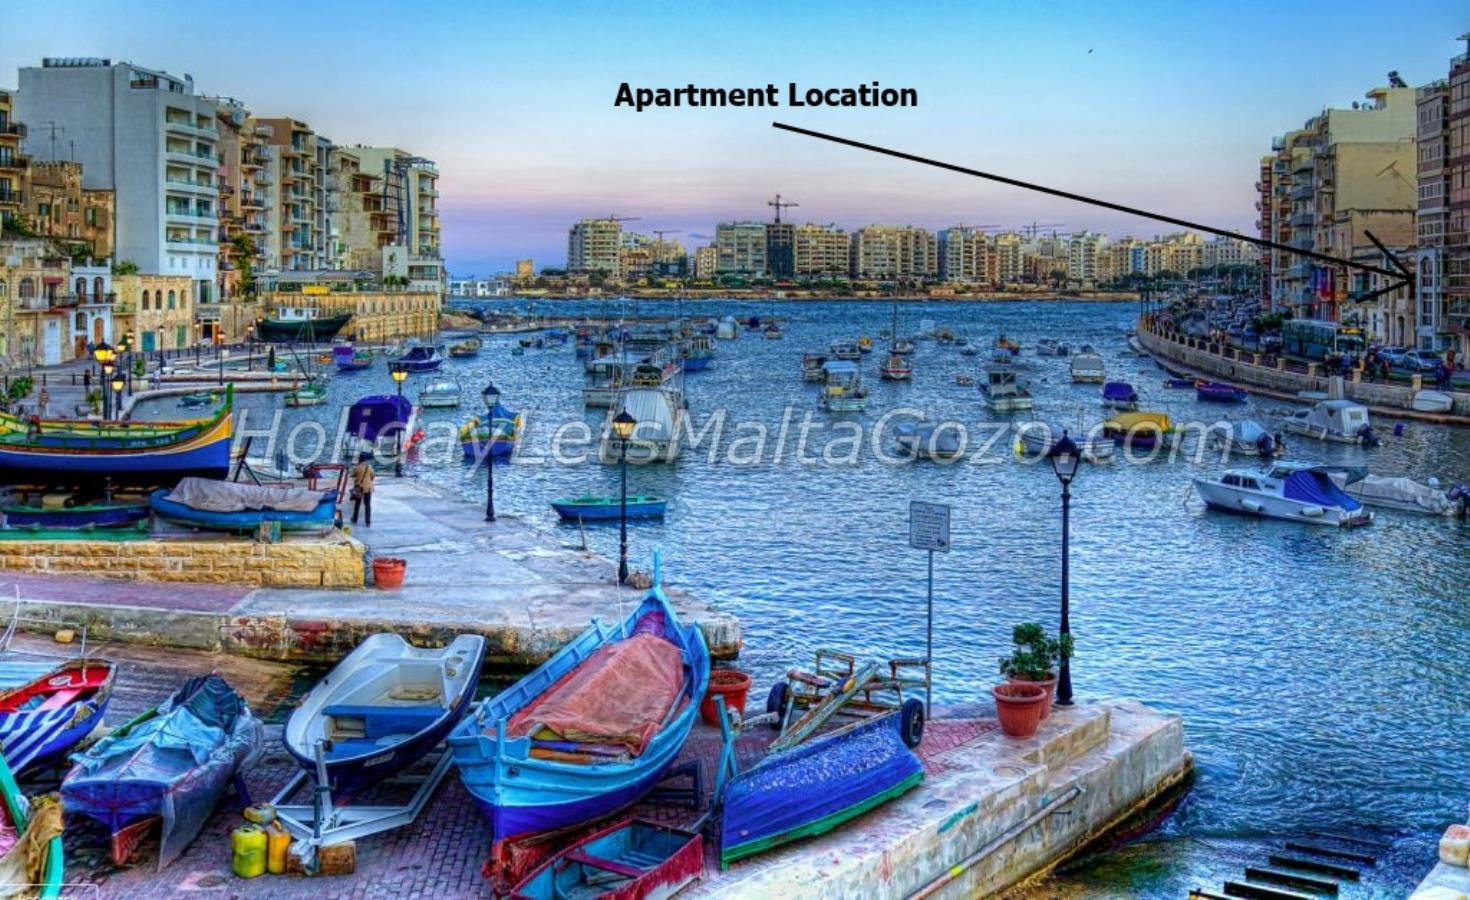 Apartment location on Spinola Bay